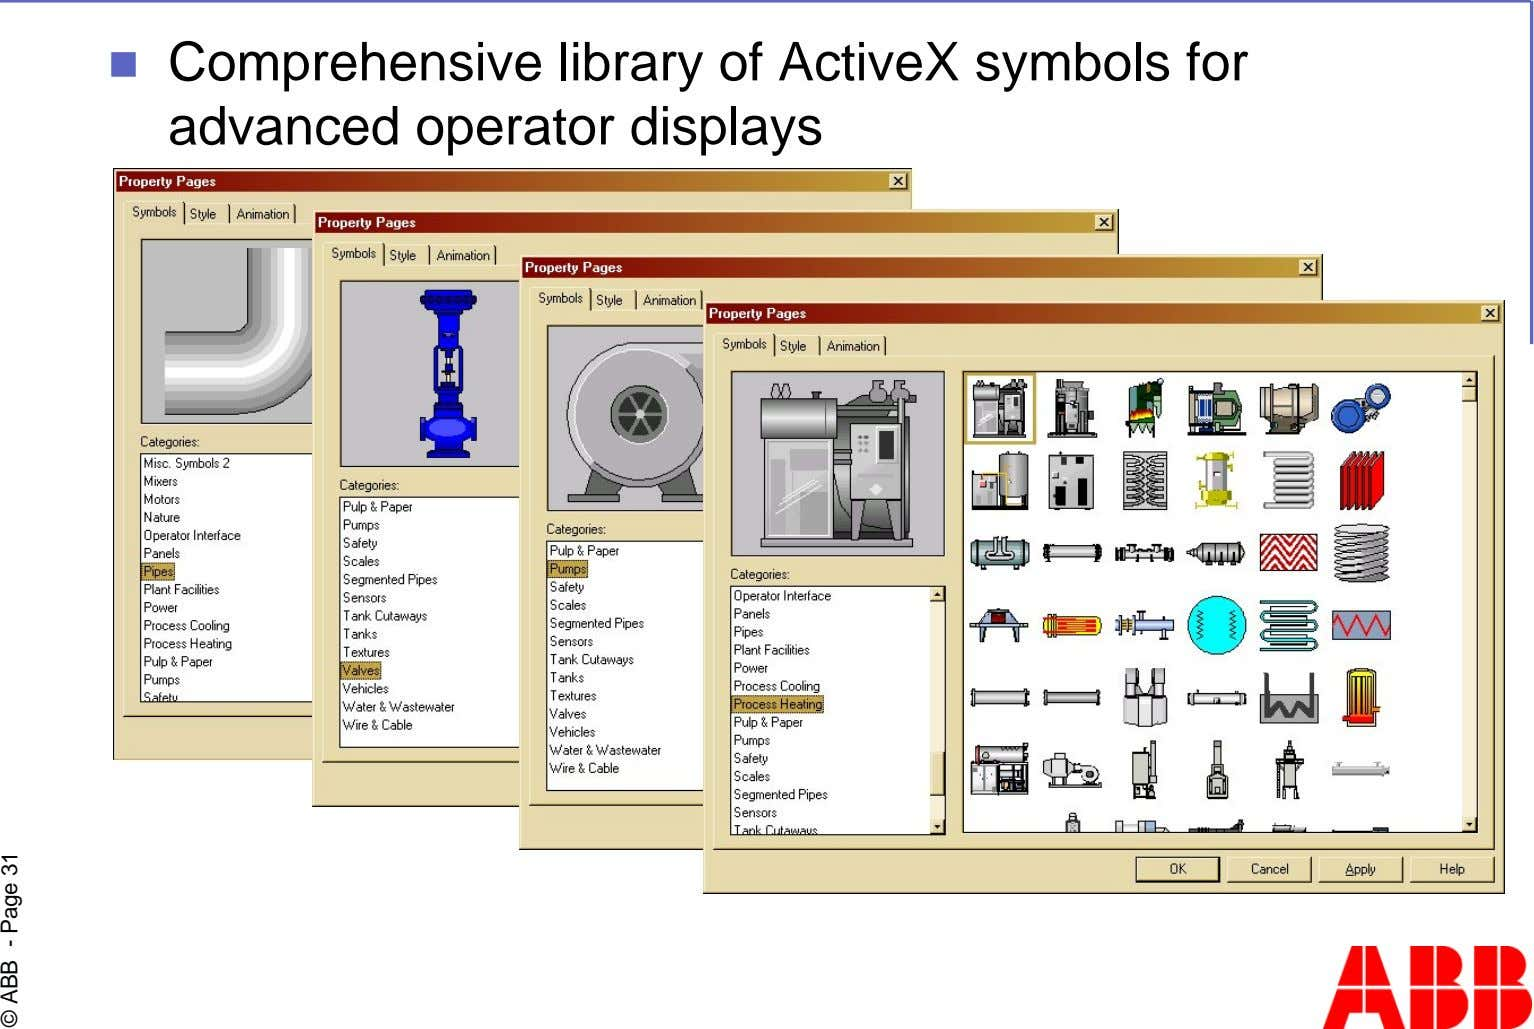 Comprehensive library of ActiveX symbols for advanced operator displays © ABB - Page 31